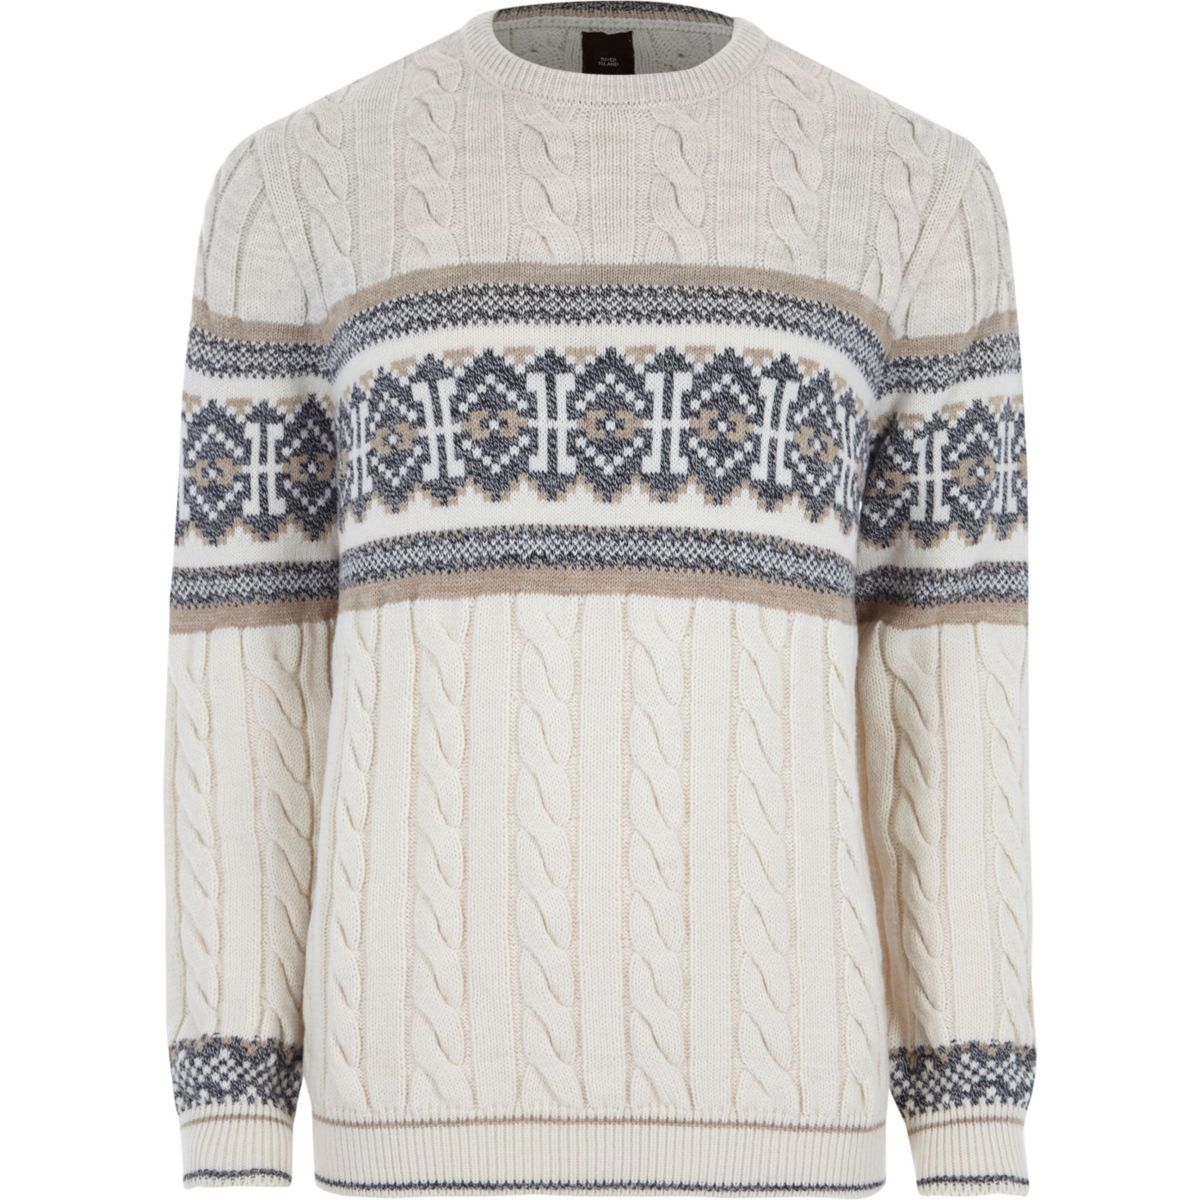 Stone Fairisle cable knit Christmas sweater - Sweaters & Cardigans ...